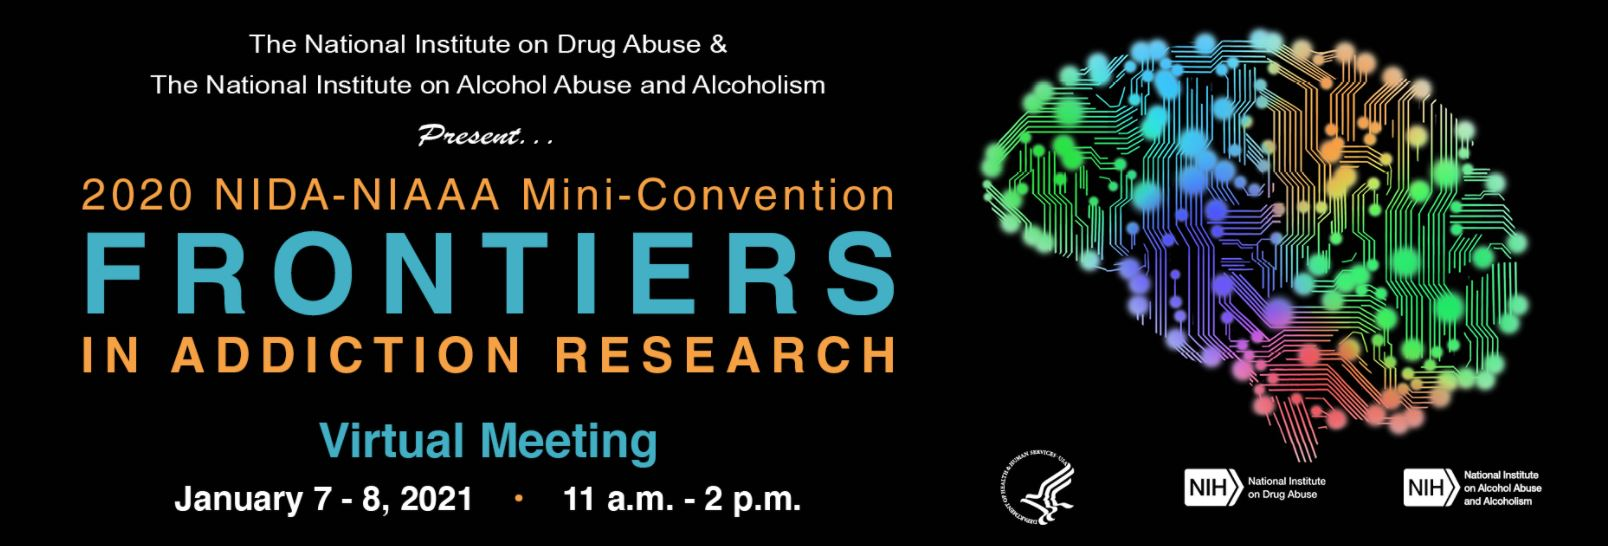 Frontiers in Addiction Research Mini Convention 2020